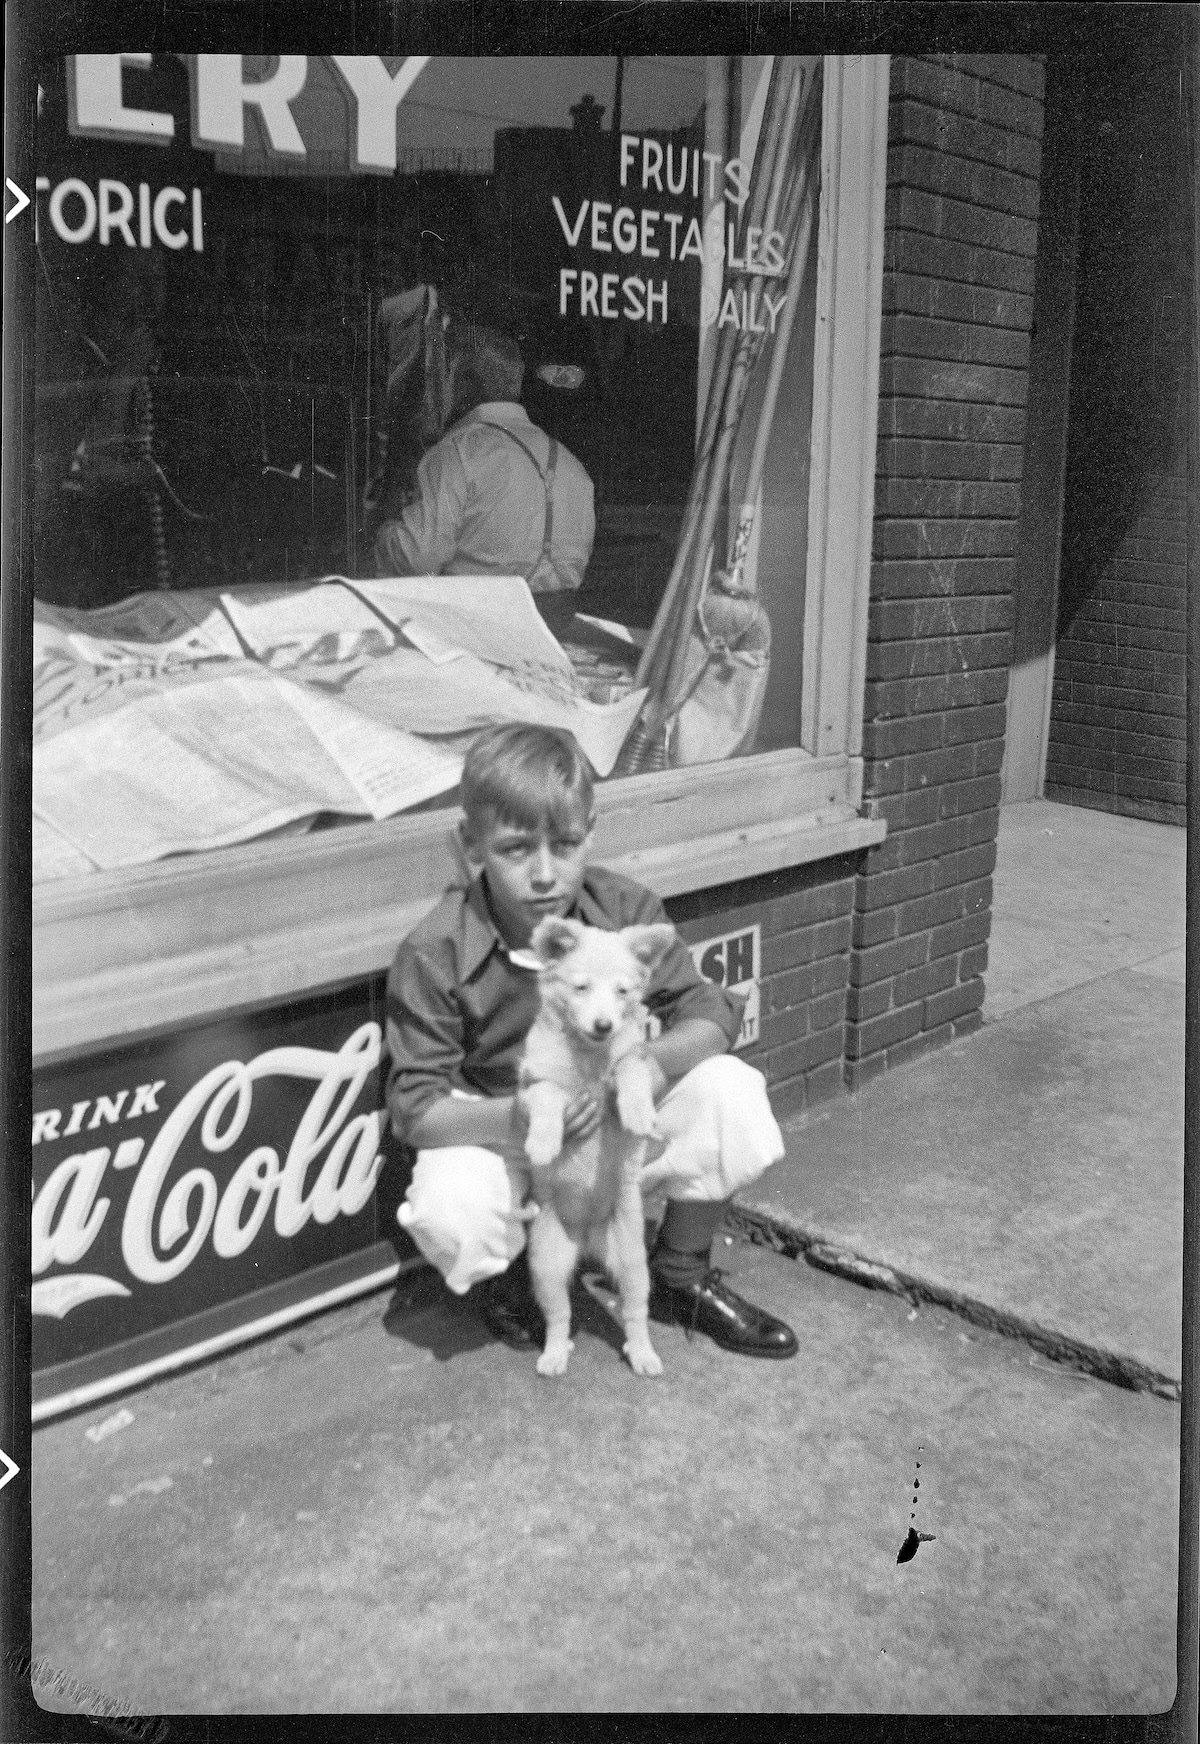 Young Boy in 1930s Chicago with His Dog